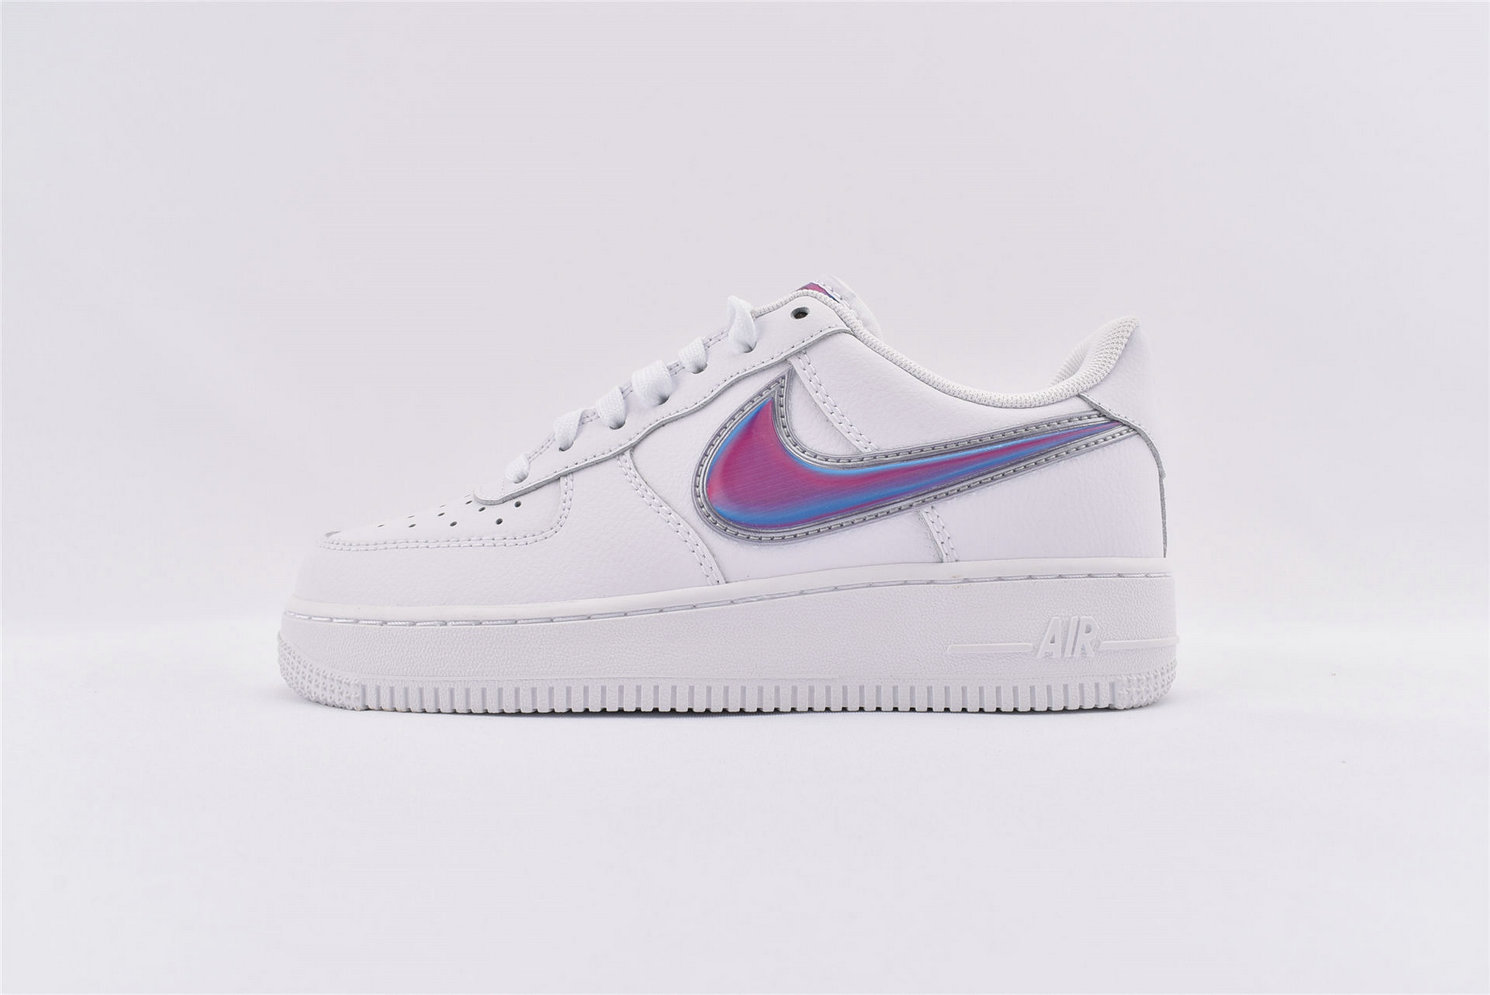 Where To Buy Wholesale Cheap Nike Air Force 1 Low Oversized Swoosh White Racer Blue AO2441-101 - www.wholesaleflyknit.com